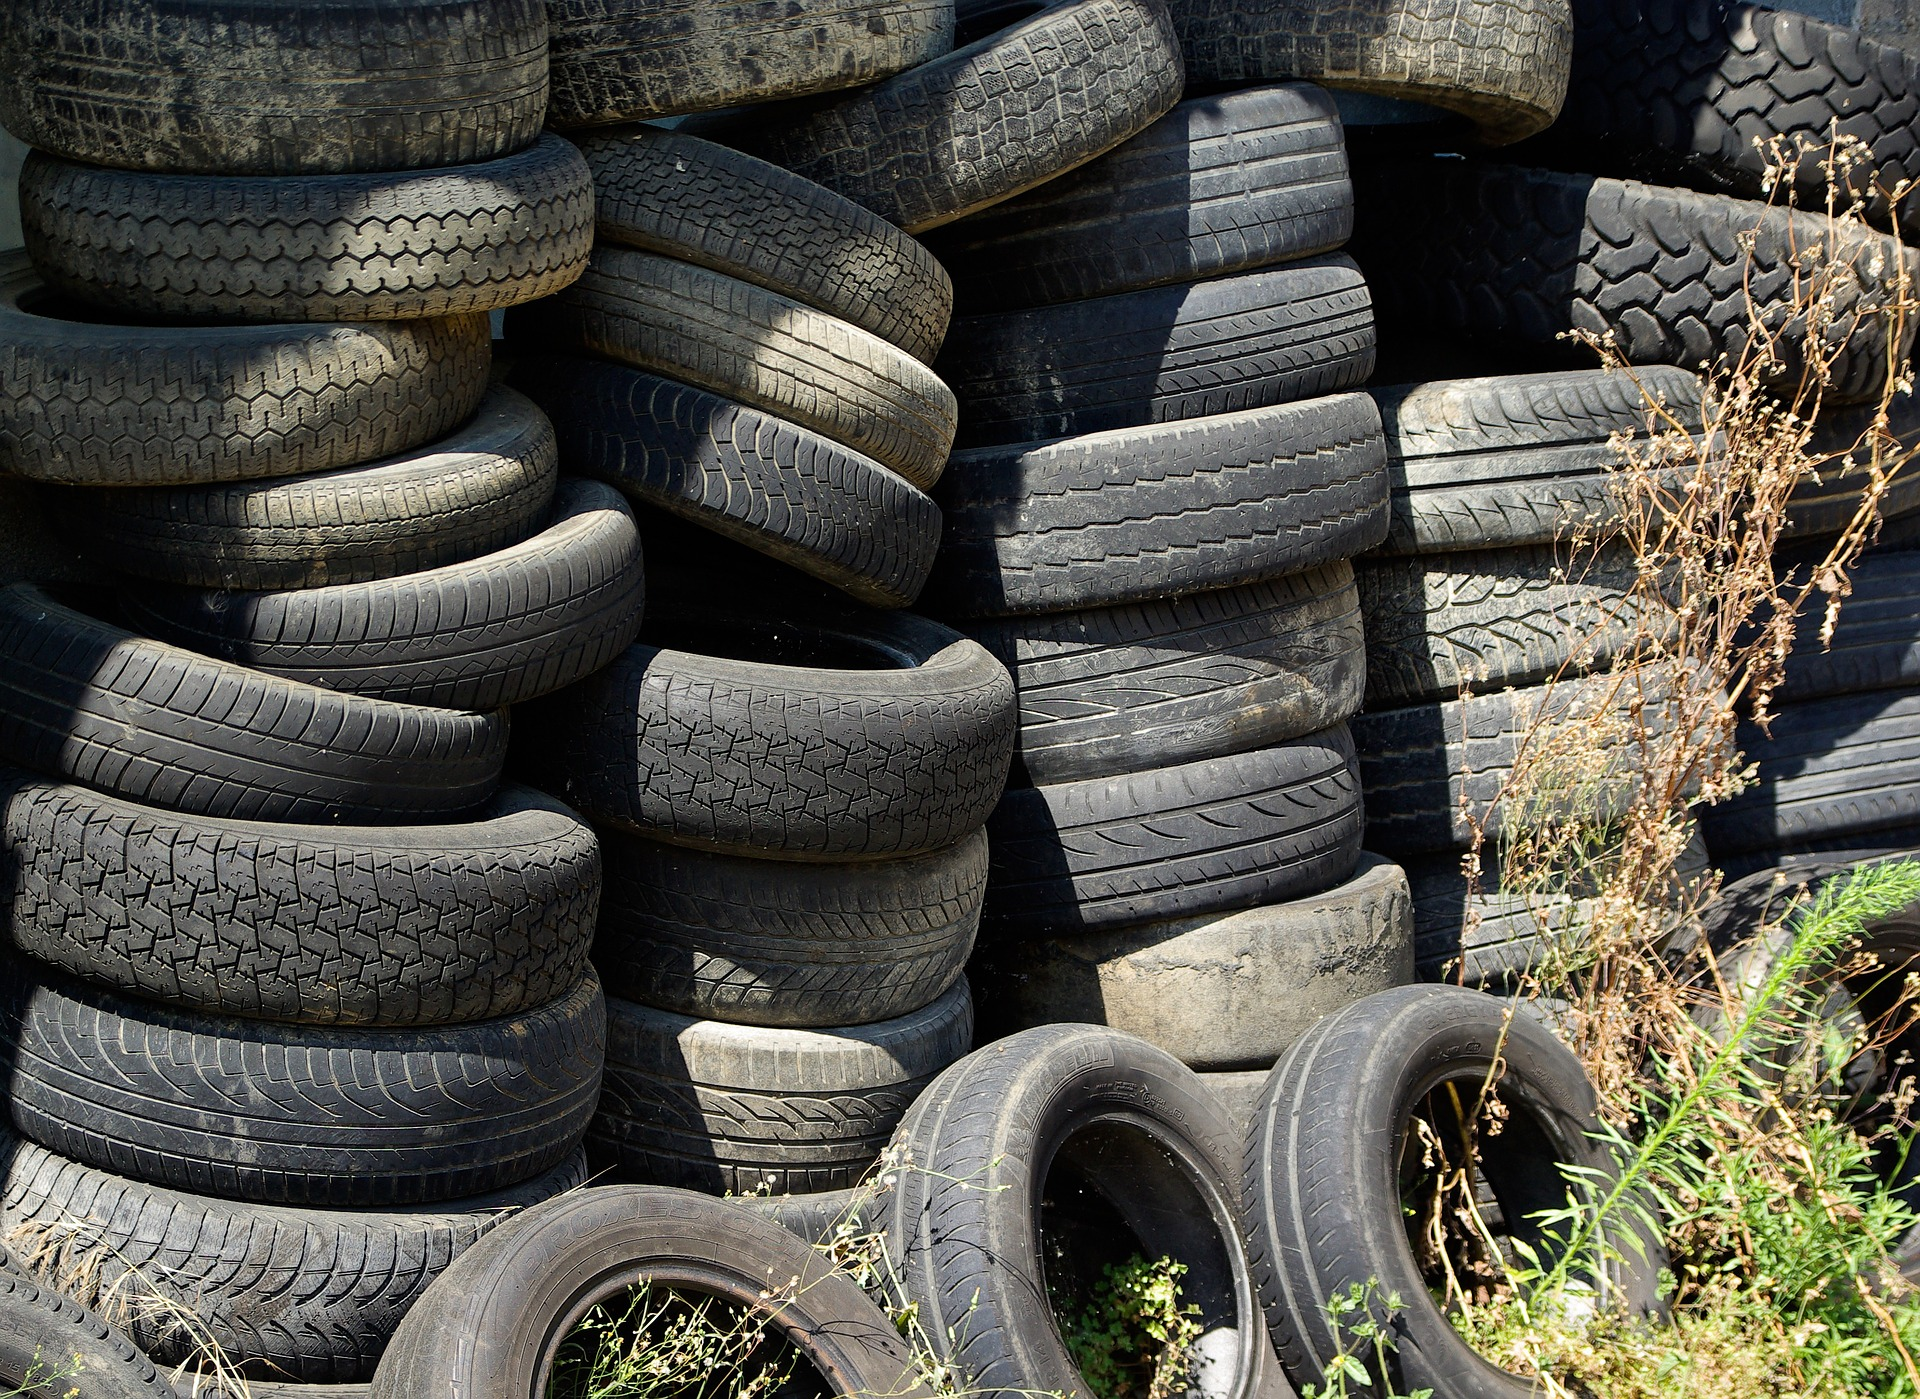 You use tires year around in Canada, so make sure they're in good repair